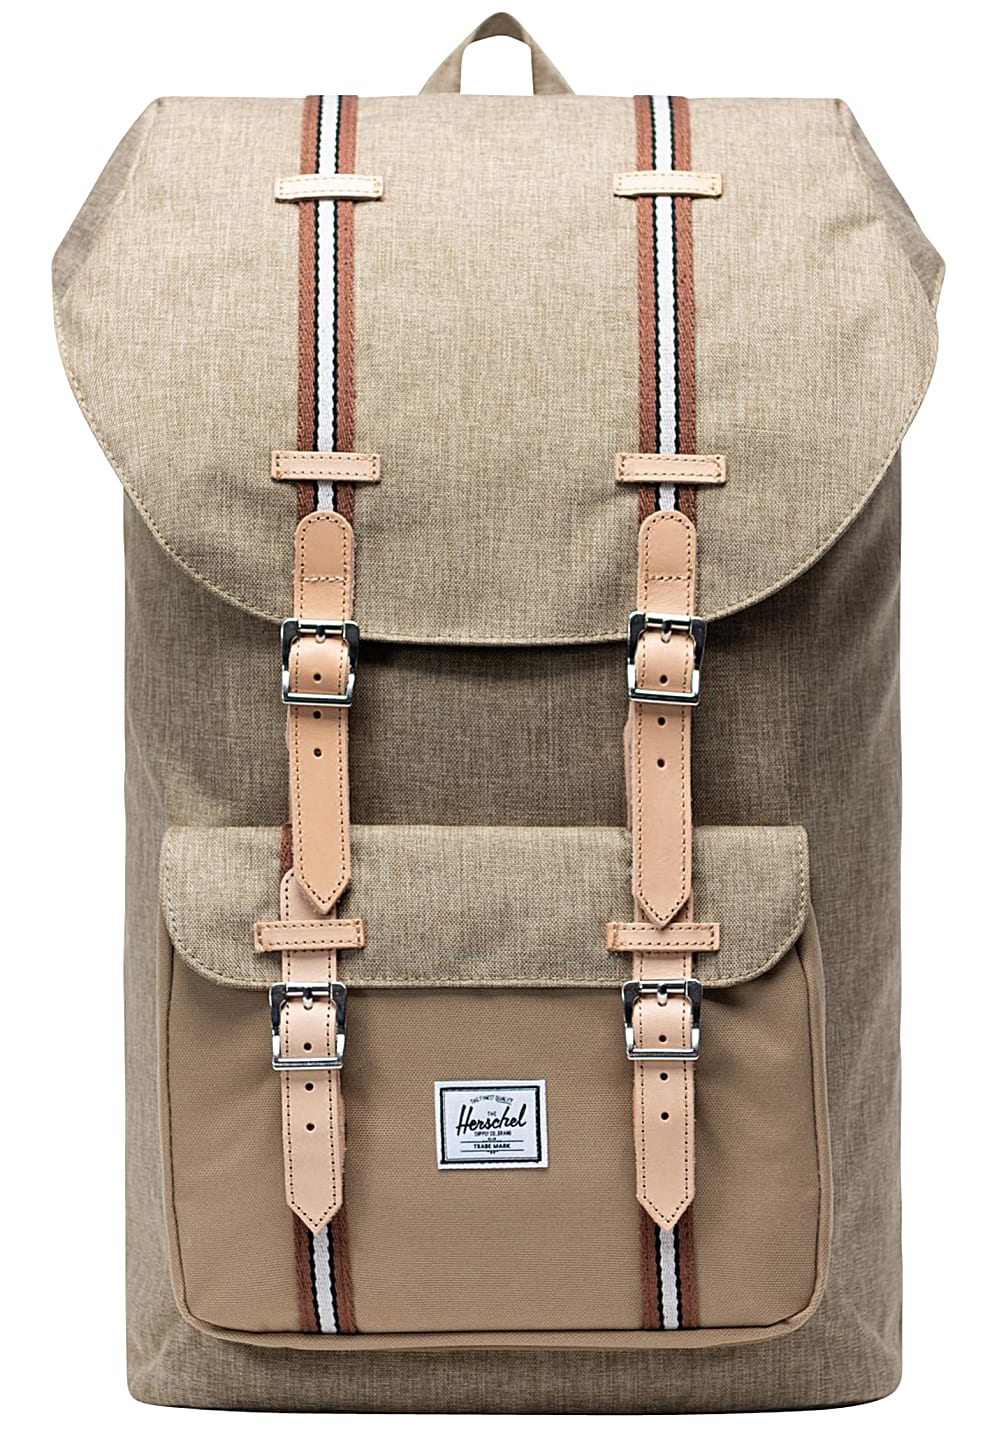 lower price with free shipping new product Herschel SUPPLY CO Little America 25L - Backpack - Beige - Planet ...